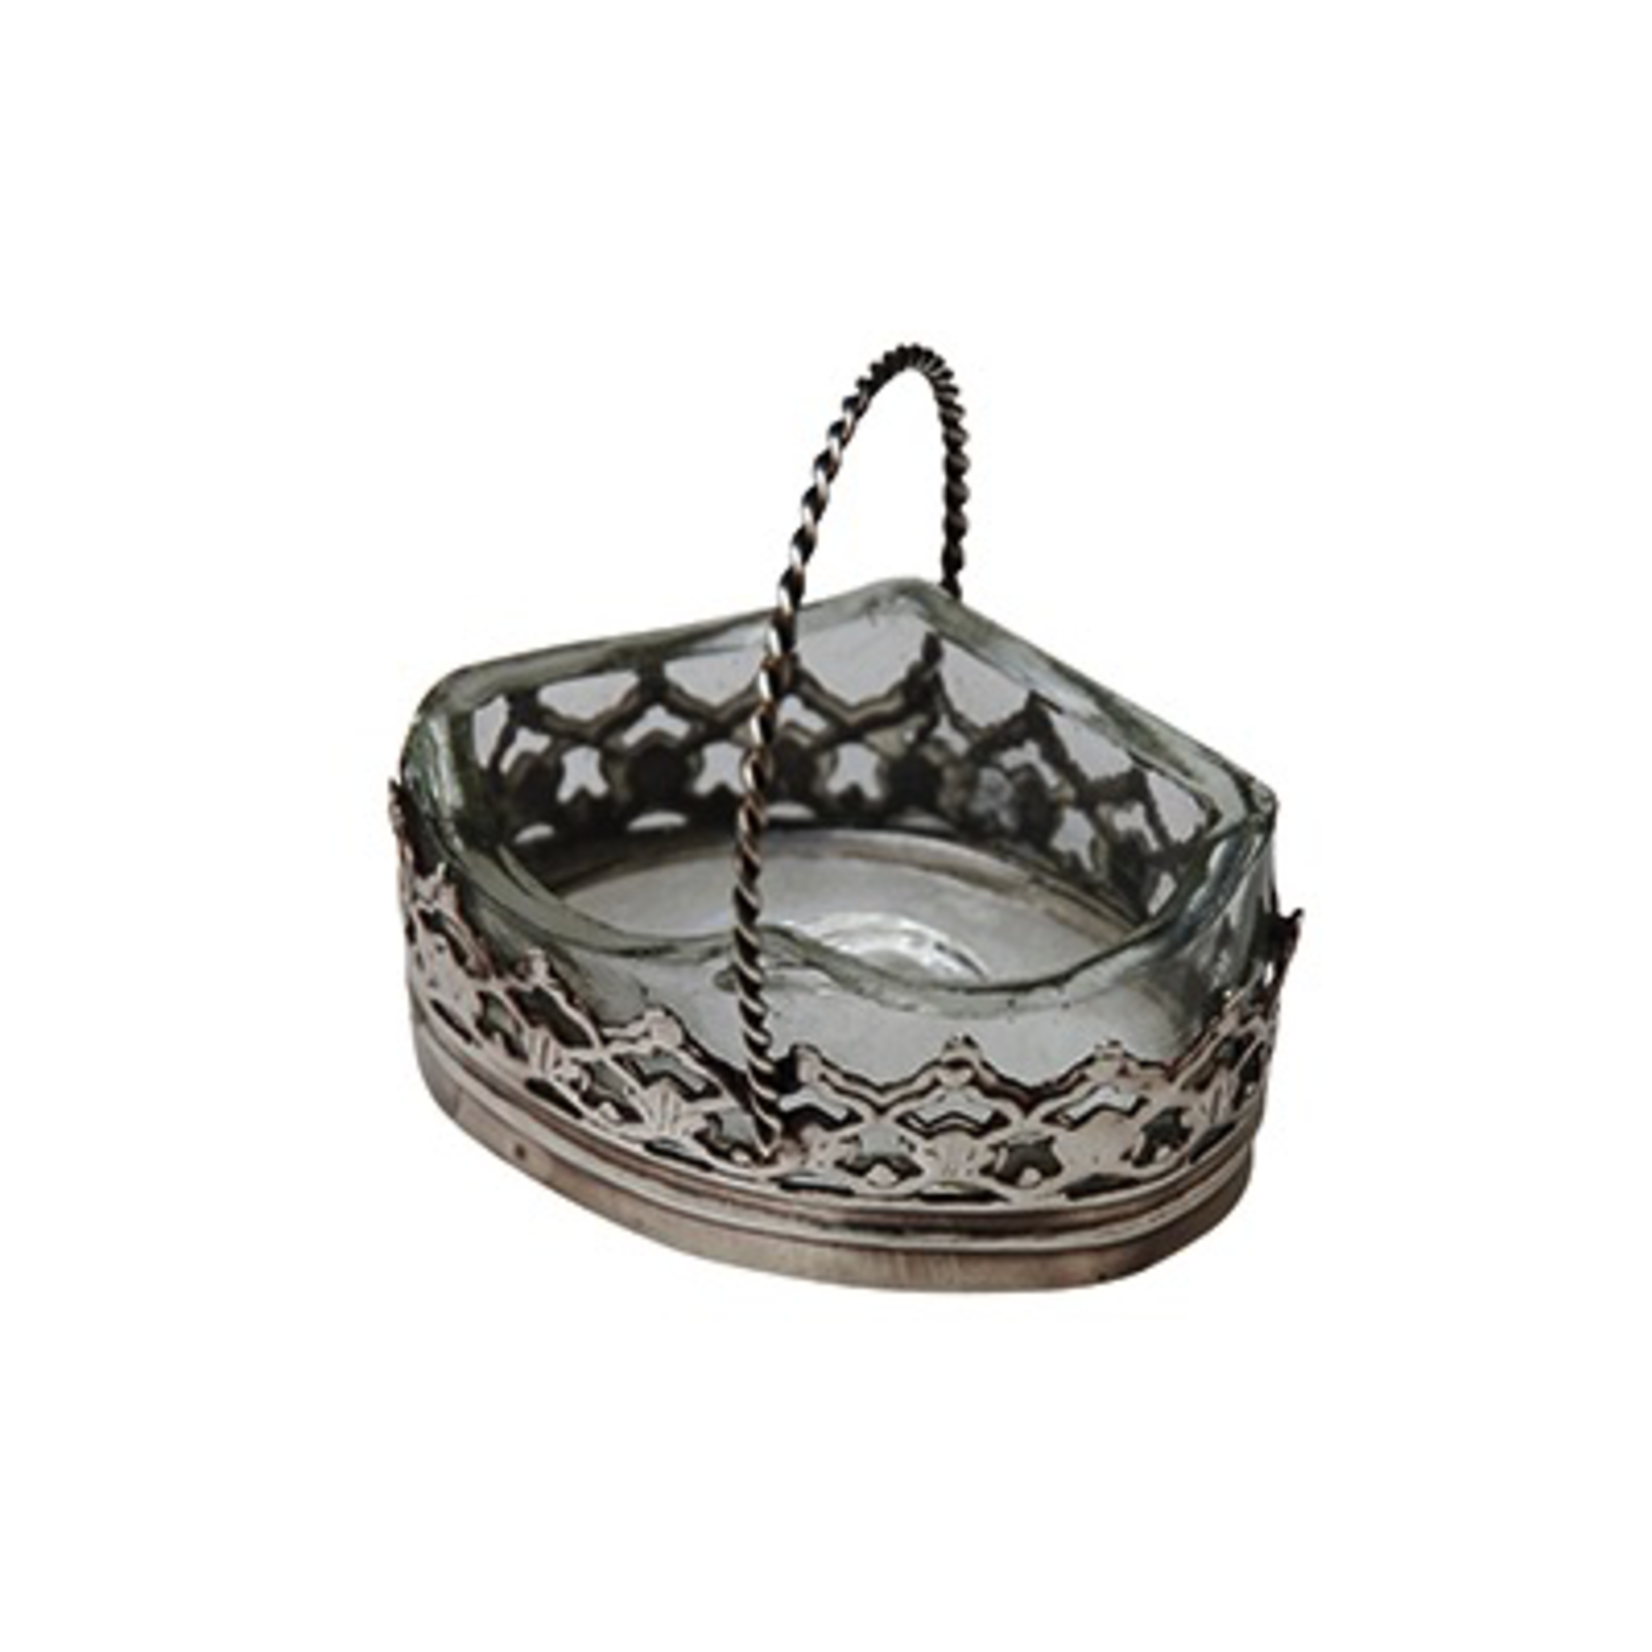 CHEHOMA SMALL SALT CELLAR IN GLASS AND METAL